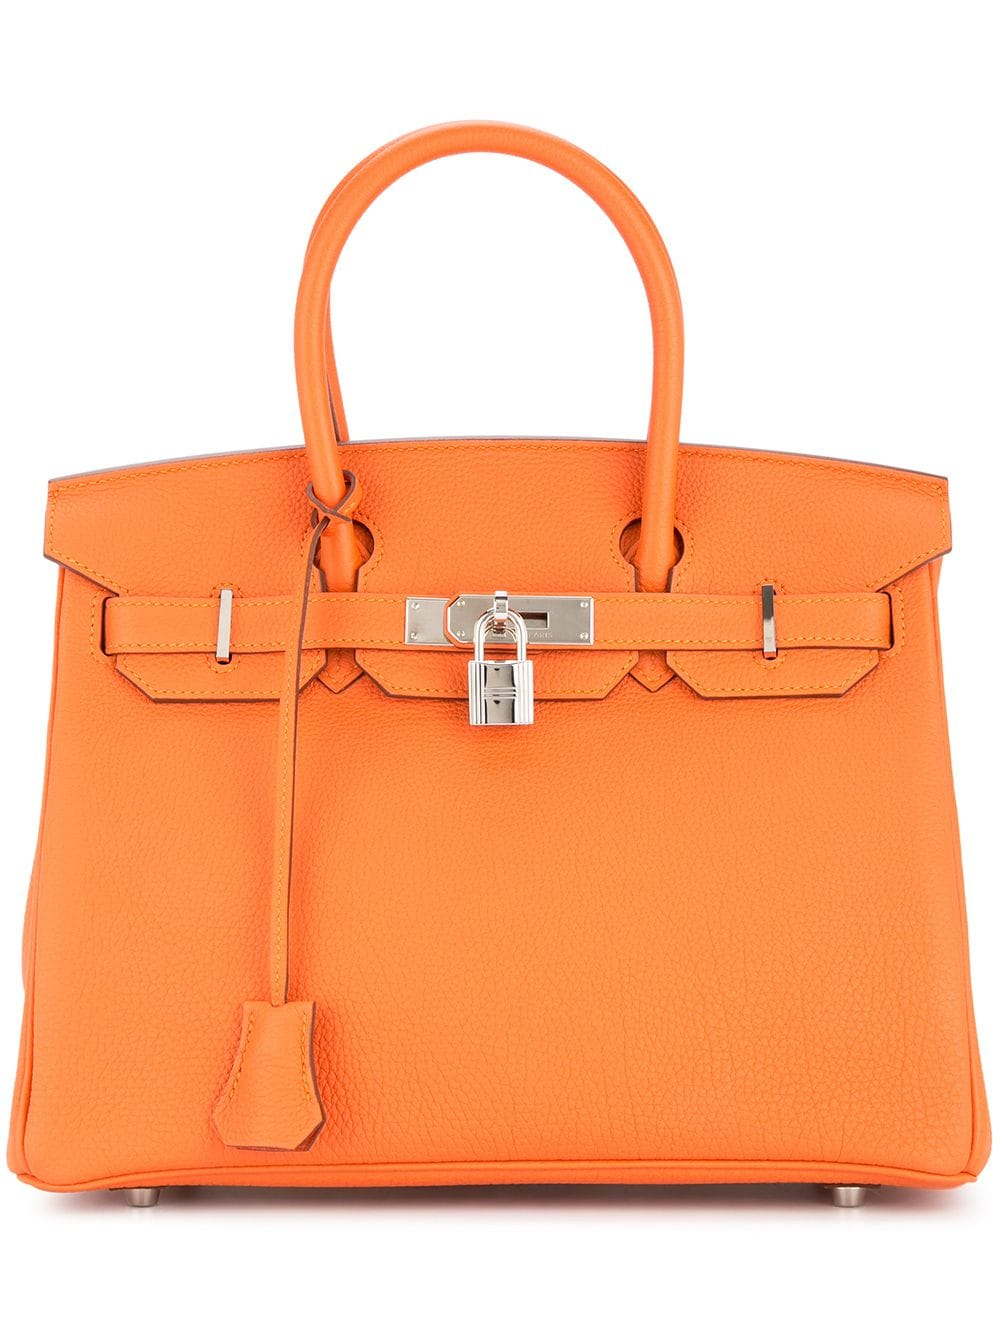 pre-owned-Hermès-Birkin-bag-Mosnar-Communications